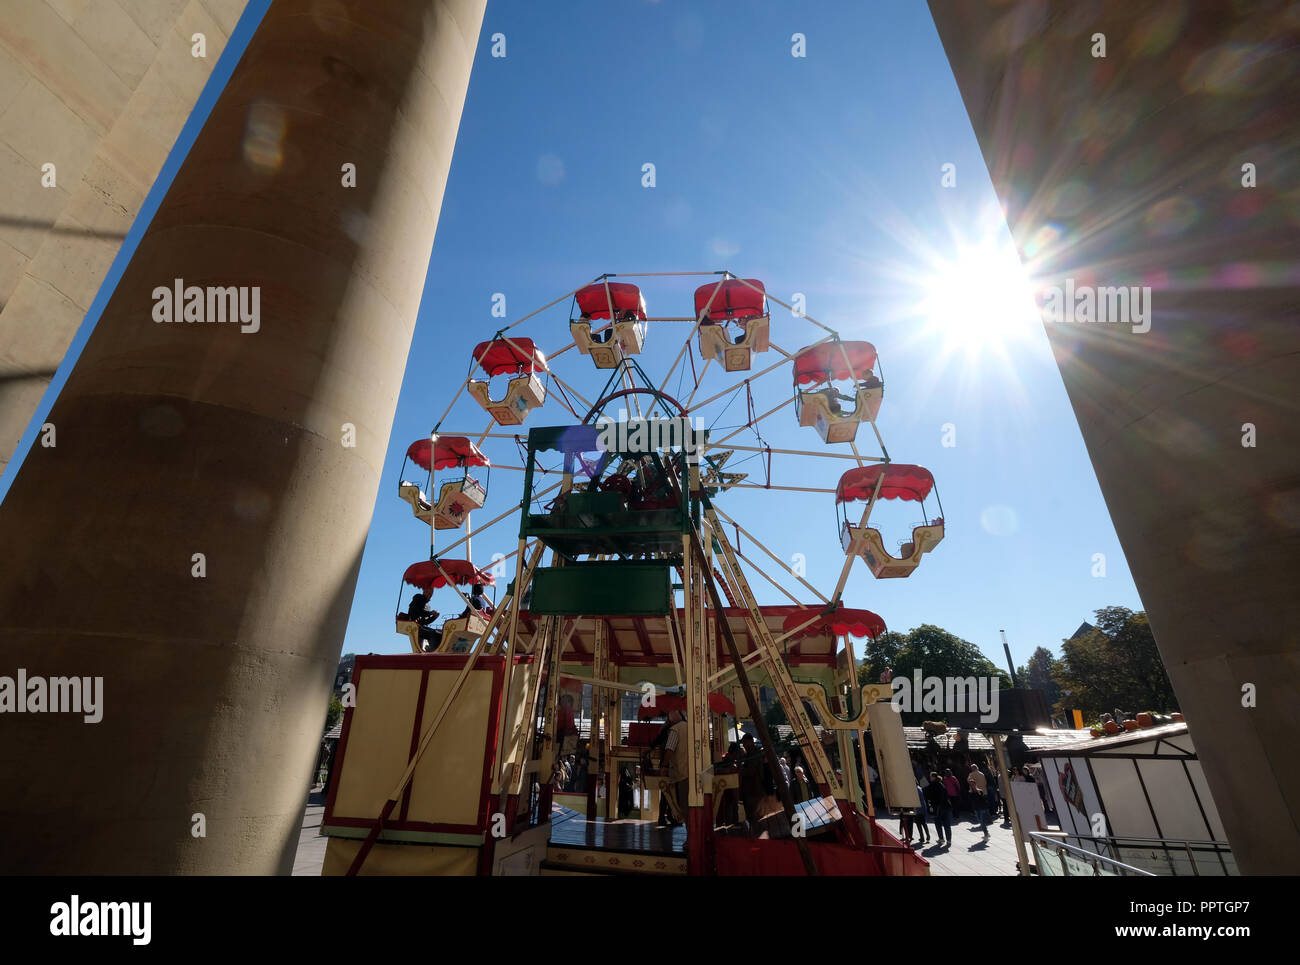 27 September 2018, Baden-Wuerttemberg, Stuttgart: In the bright sunshine on the Schlossplatz, an ancient chain carousel rotates through the columns of the king's building. The ride is part of the Historical Folk Festival, which is held on the occasion of the 200th anniversary of the Stuttgarter Wasen. Photo: Bernd Weißbrod/dpa - Stock Image